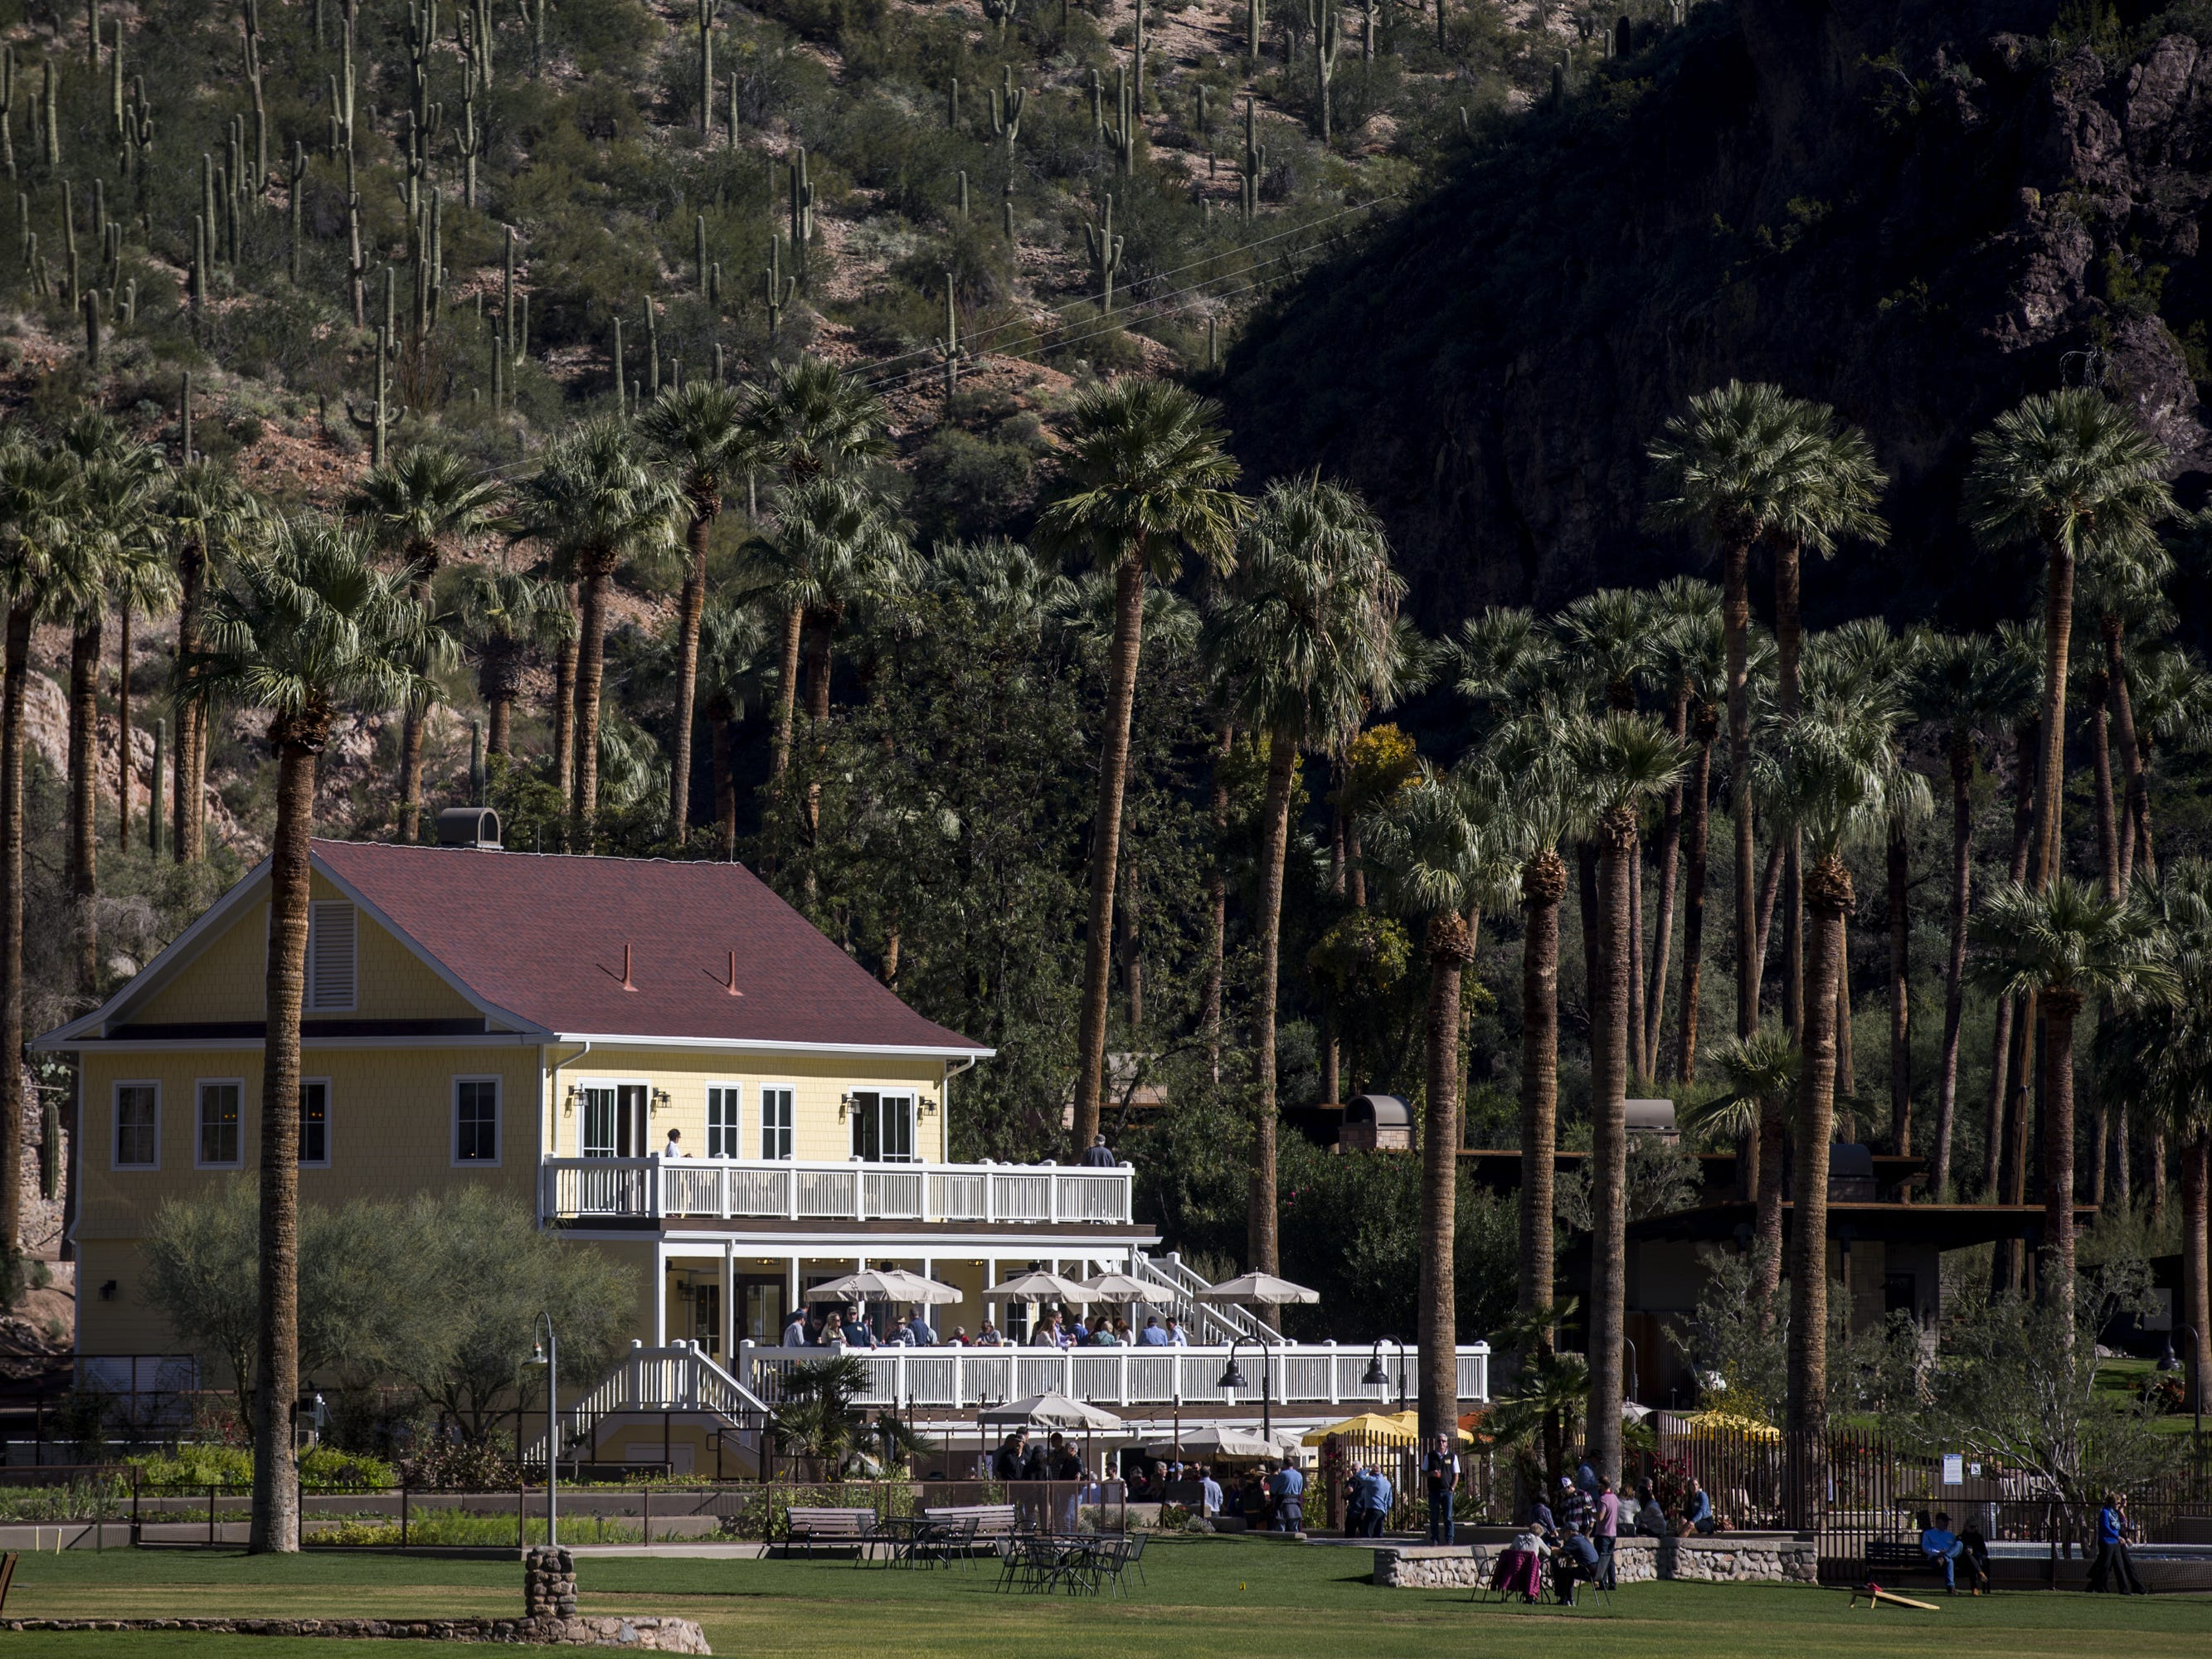 The newly renovated Castle Hot Springs resort is pictured on Saturday, Dec. 8, 2018, in Morristown, Ariz. It has been 50 years since the resort has hosted any guests.